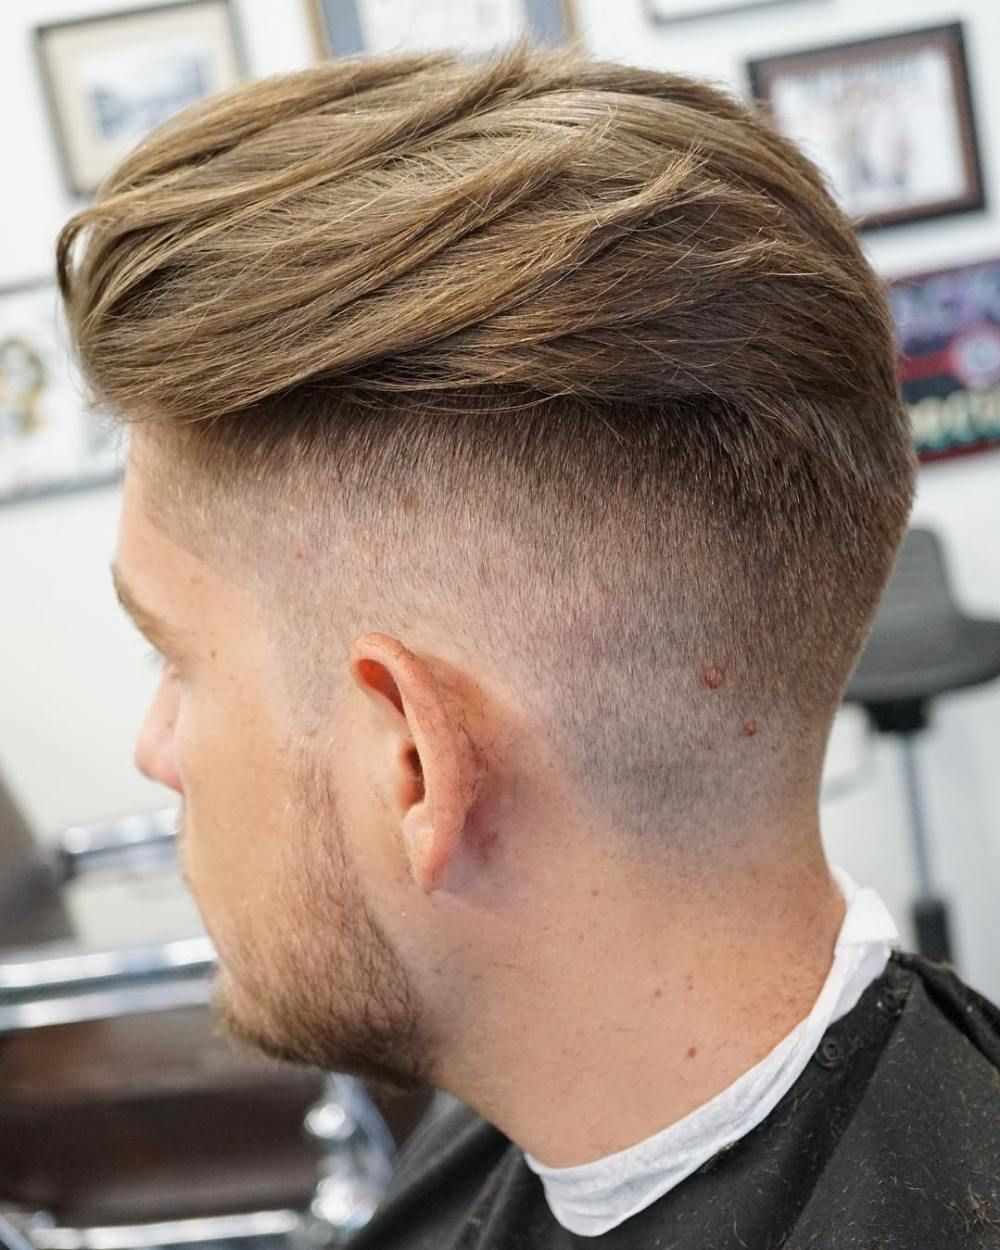 30 Ultra Cool High Fade Haircuts For Men Herenkapsels Mannenkapsels Heren Kapsel